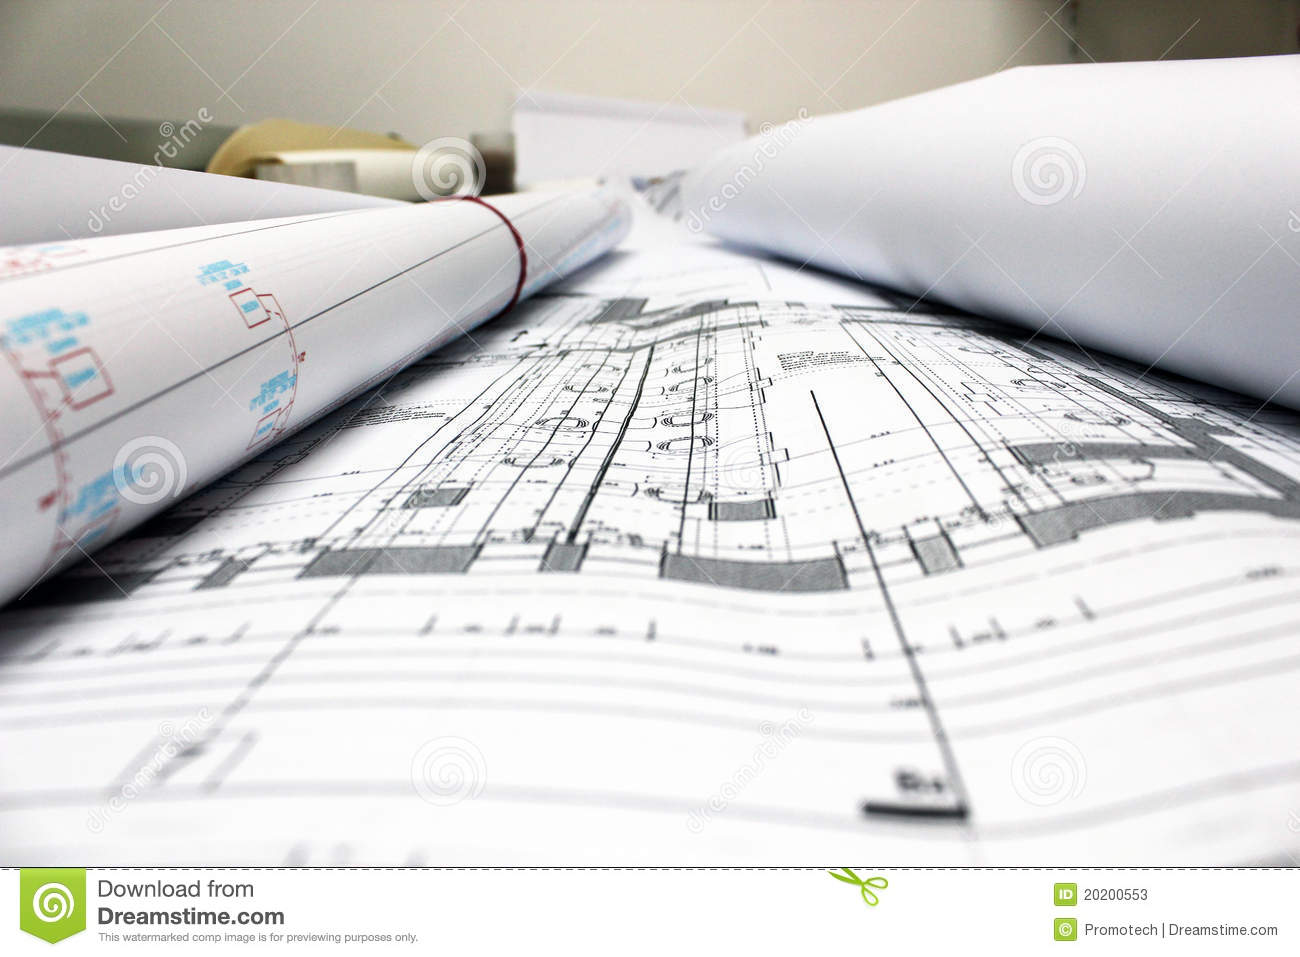 Architectural Drawings Royalty Free Stock Photos Image 34663968